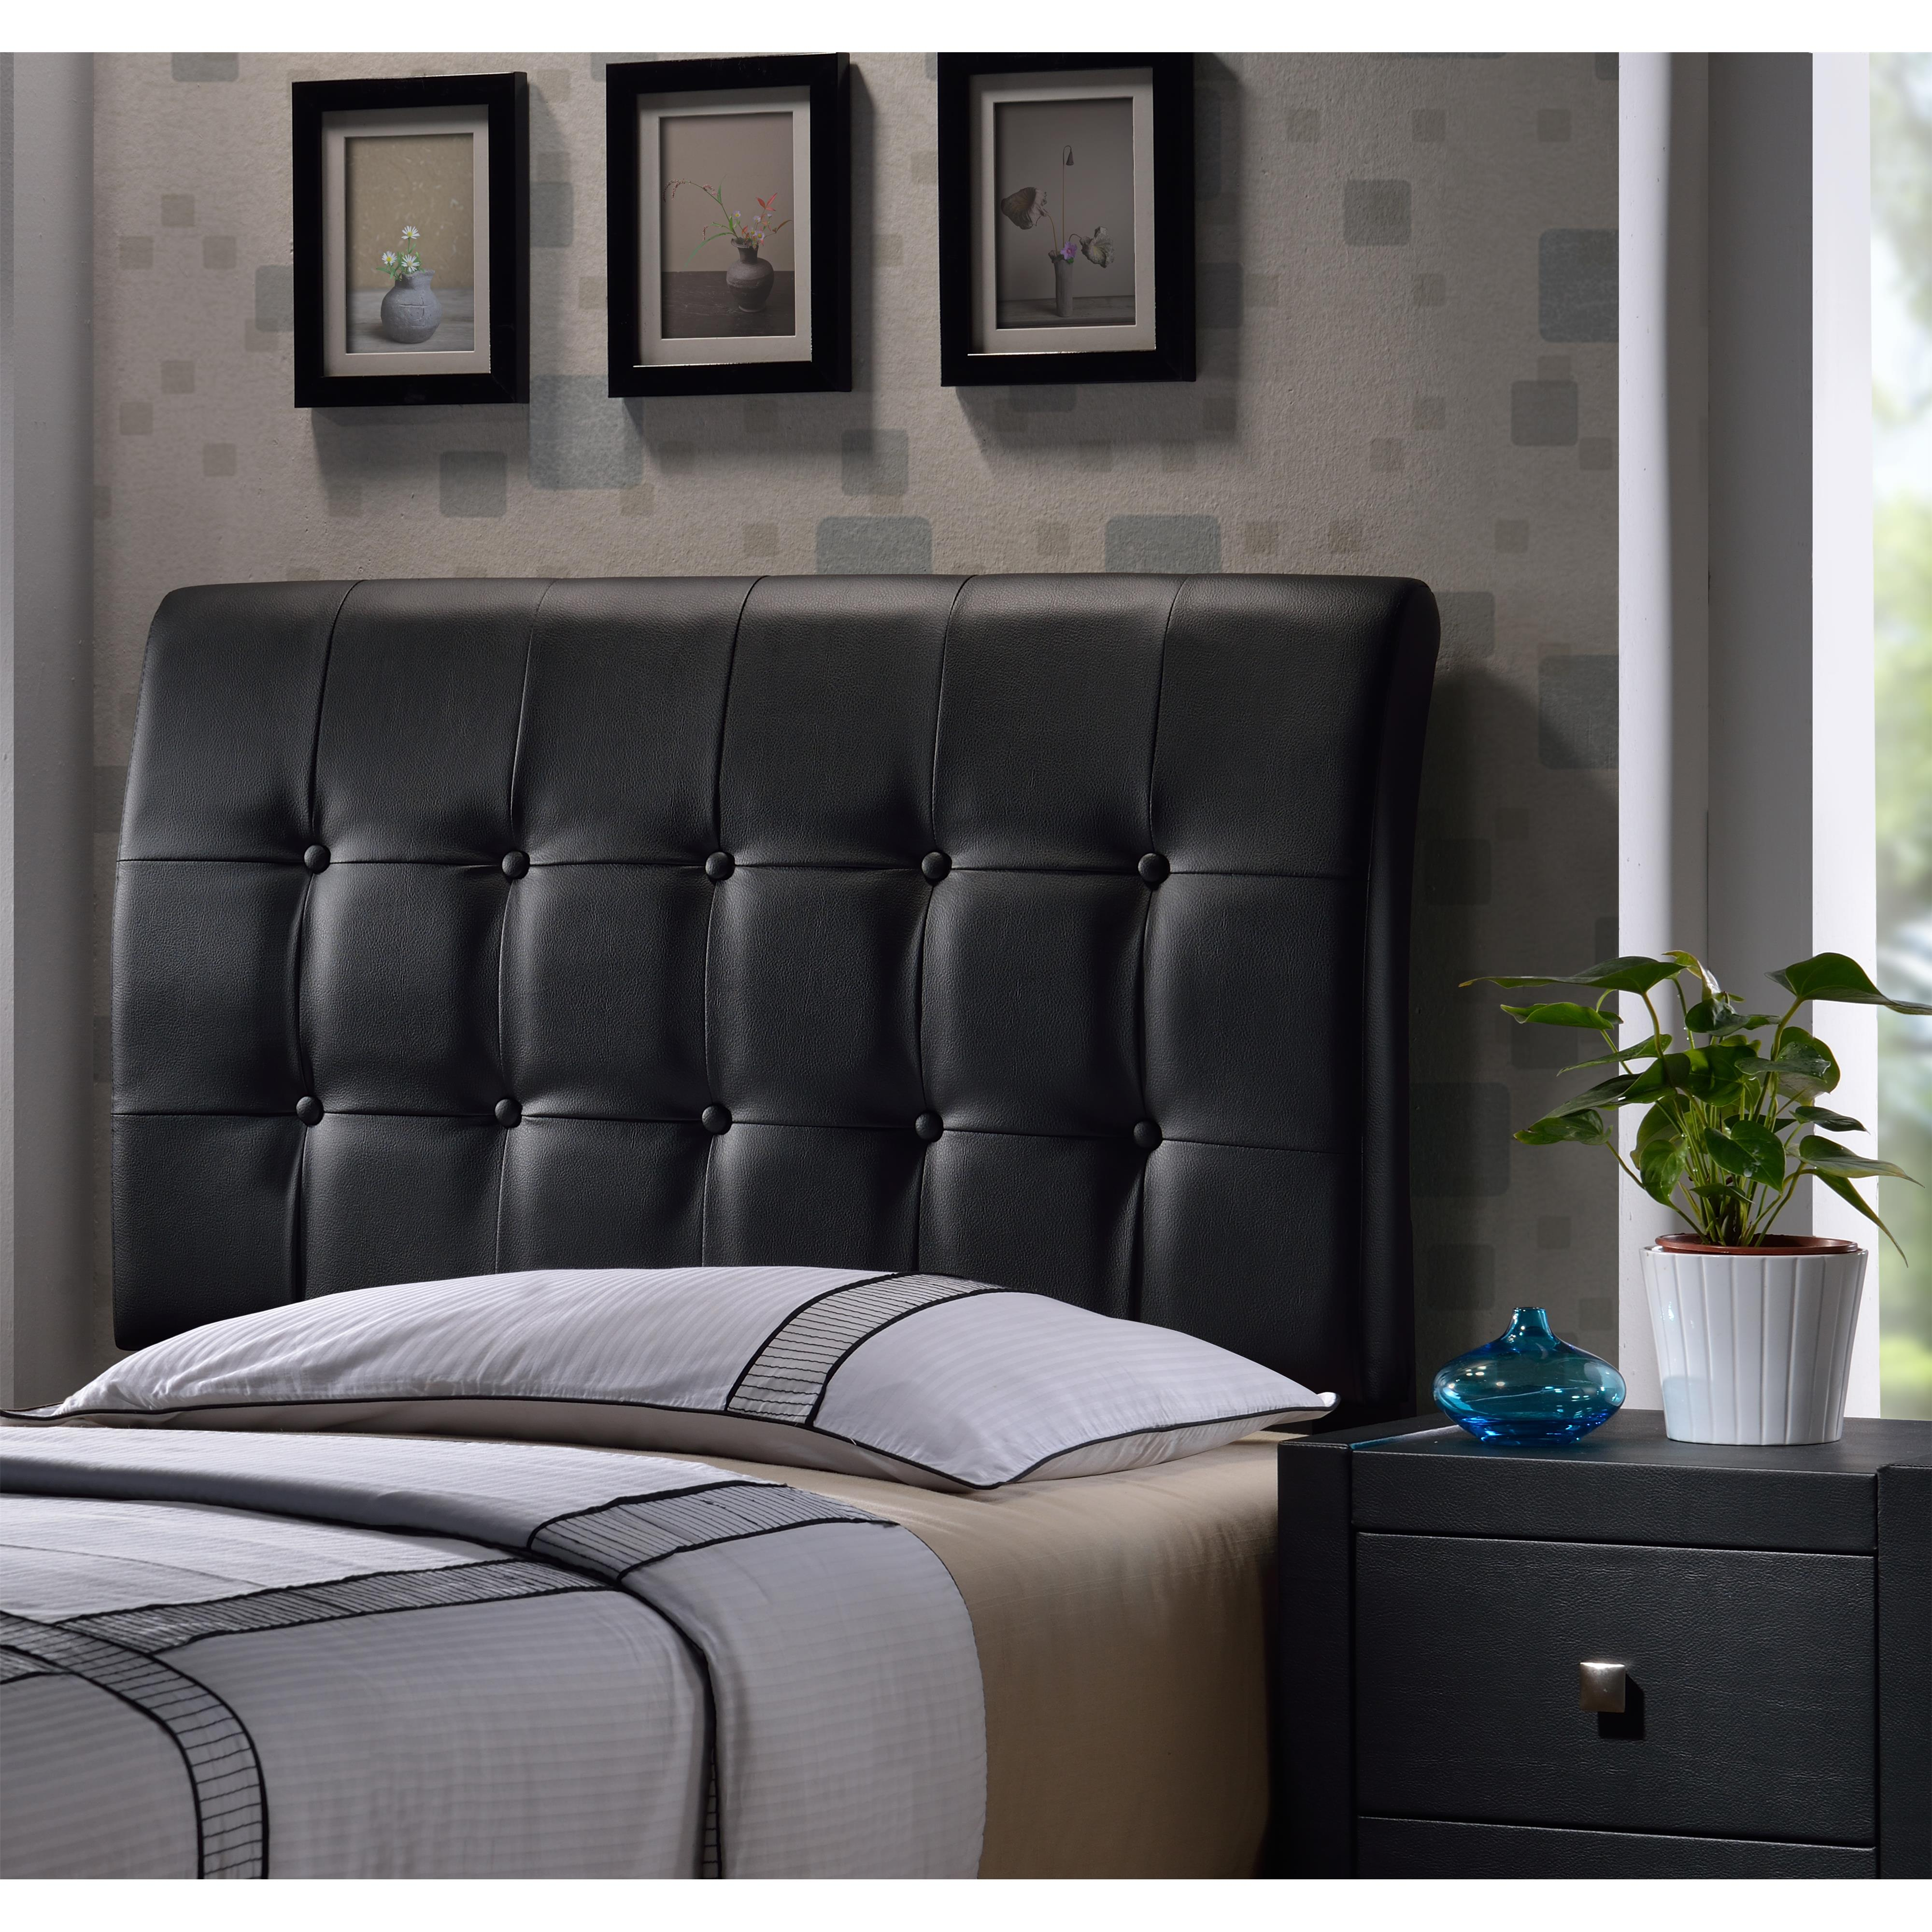 Upholstered Beds Lusso Full Headboard by Hillsdale at Crowley Furniture & Mattress